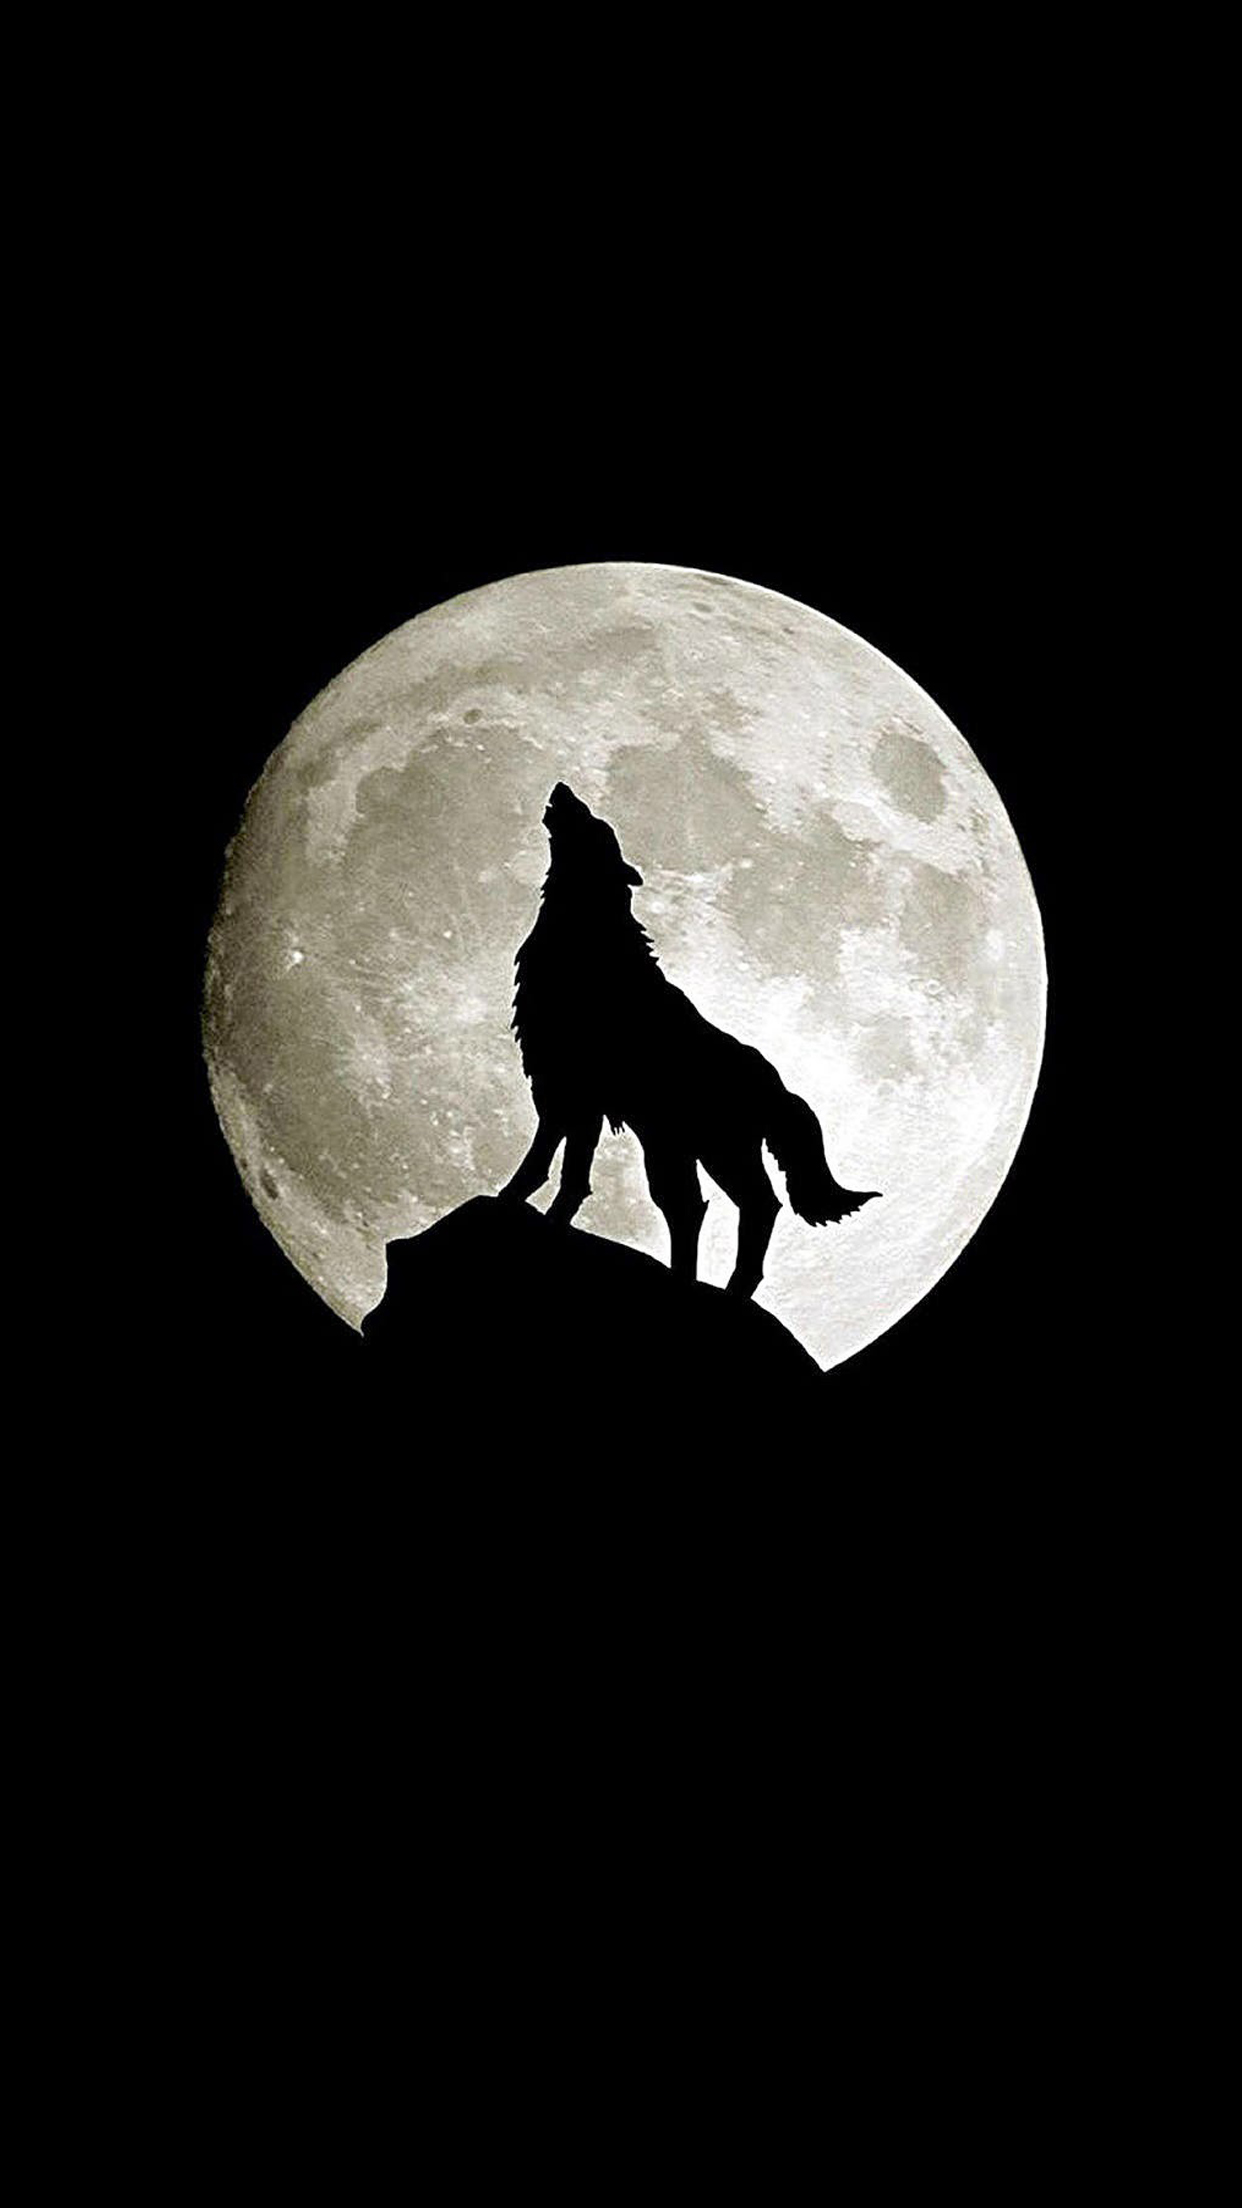 Loup En Pleine Lune Wallpaper For Iphone X 8 7 6 Free